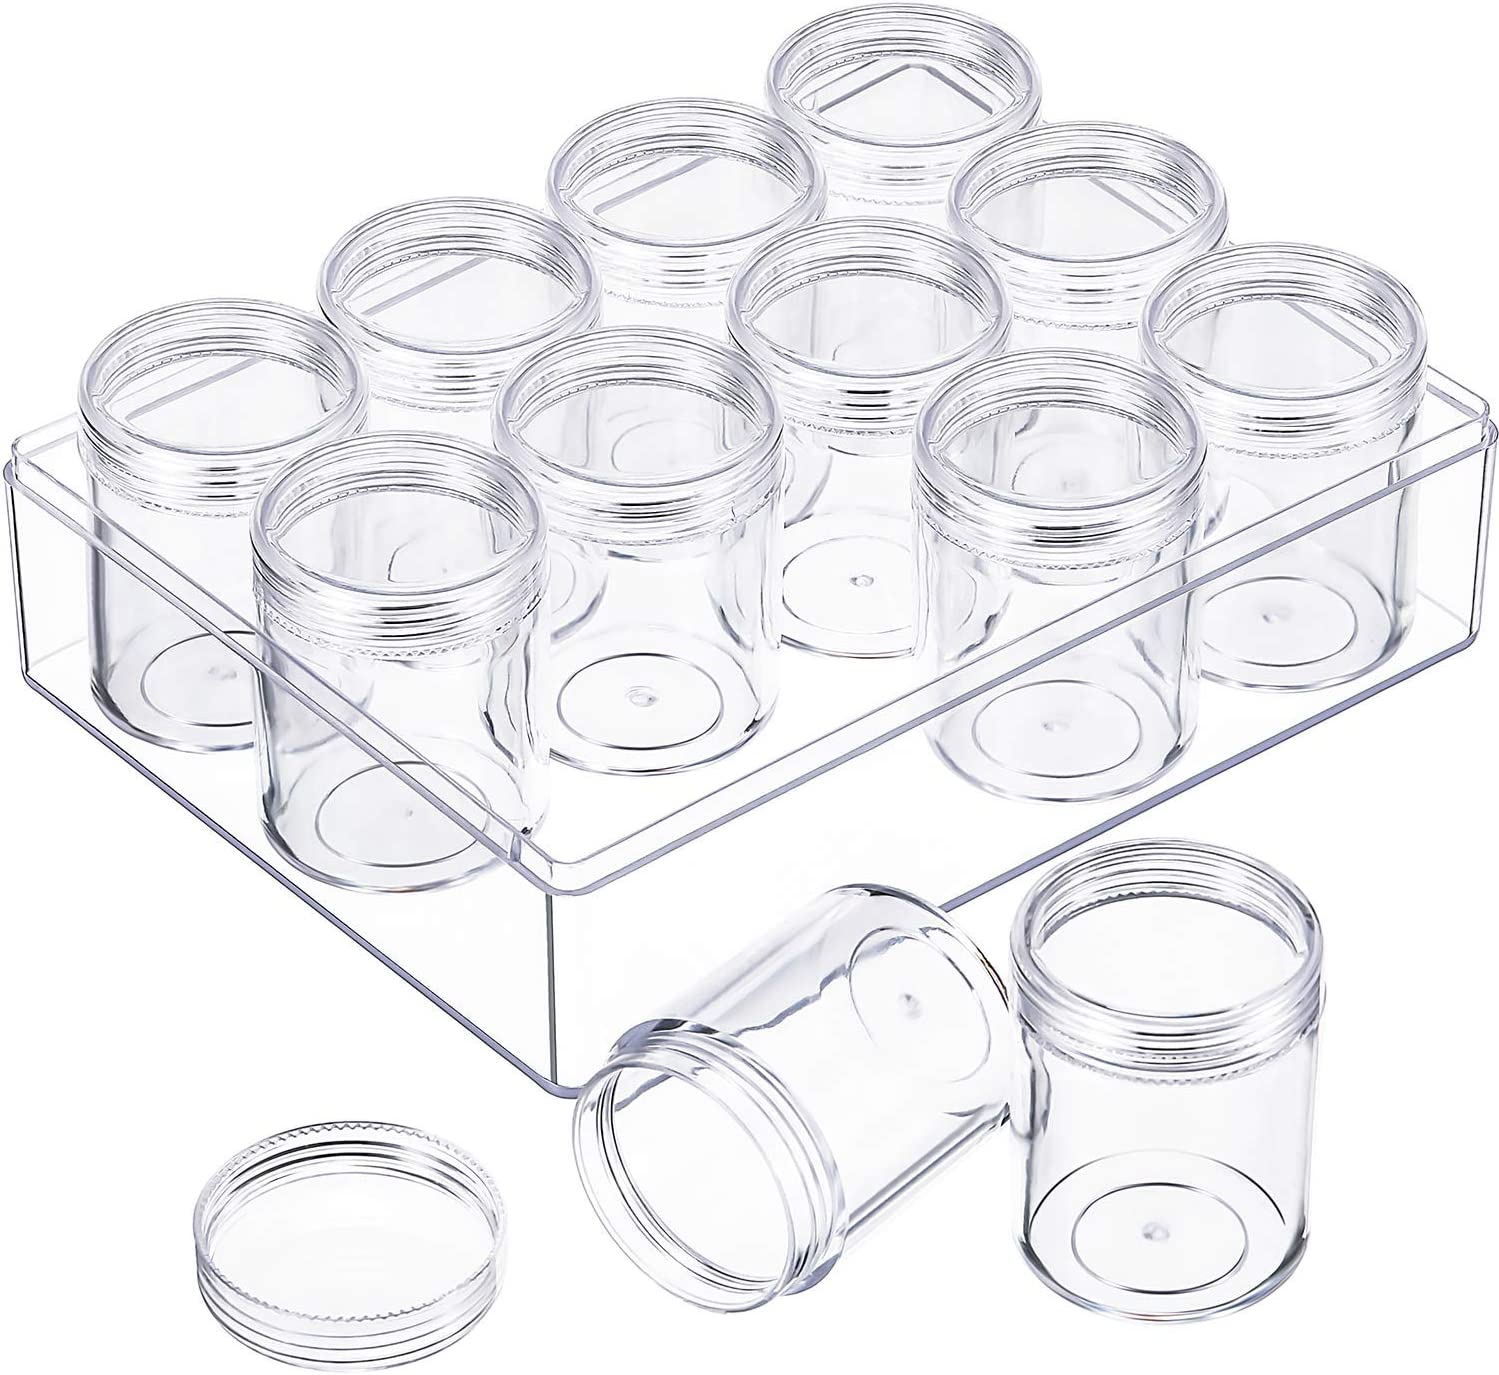 Blulu Clear Bead Organizer Bead Storage Containers Set with 12 Boxes 1.4 x 1.5 Inches 1.9 x 1.5 Inches